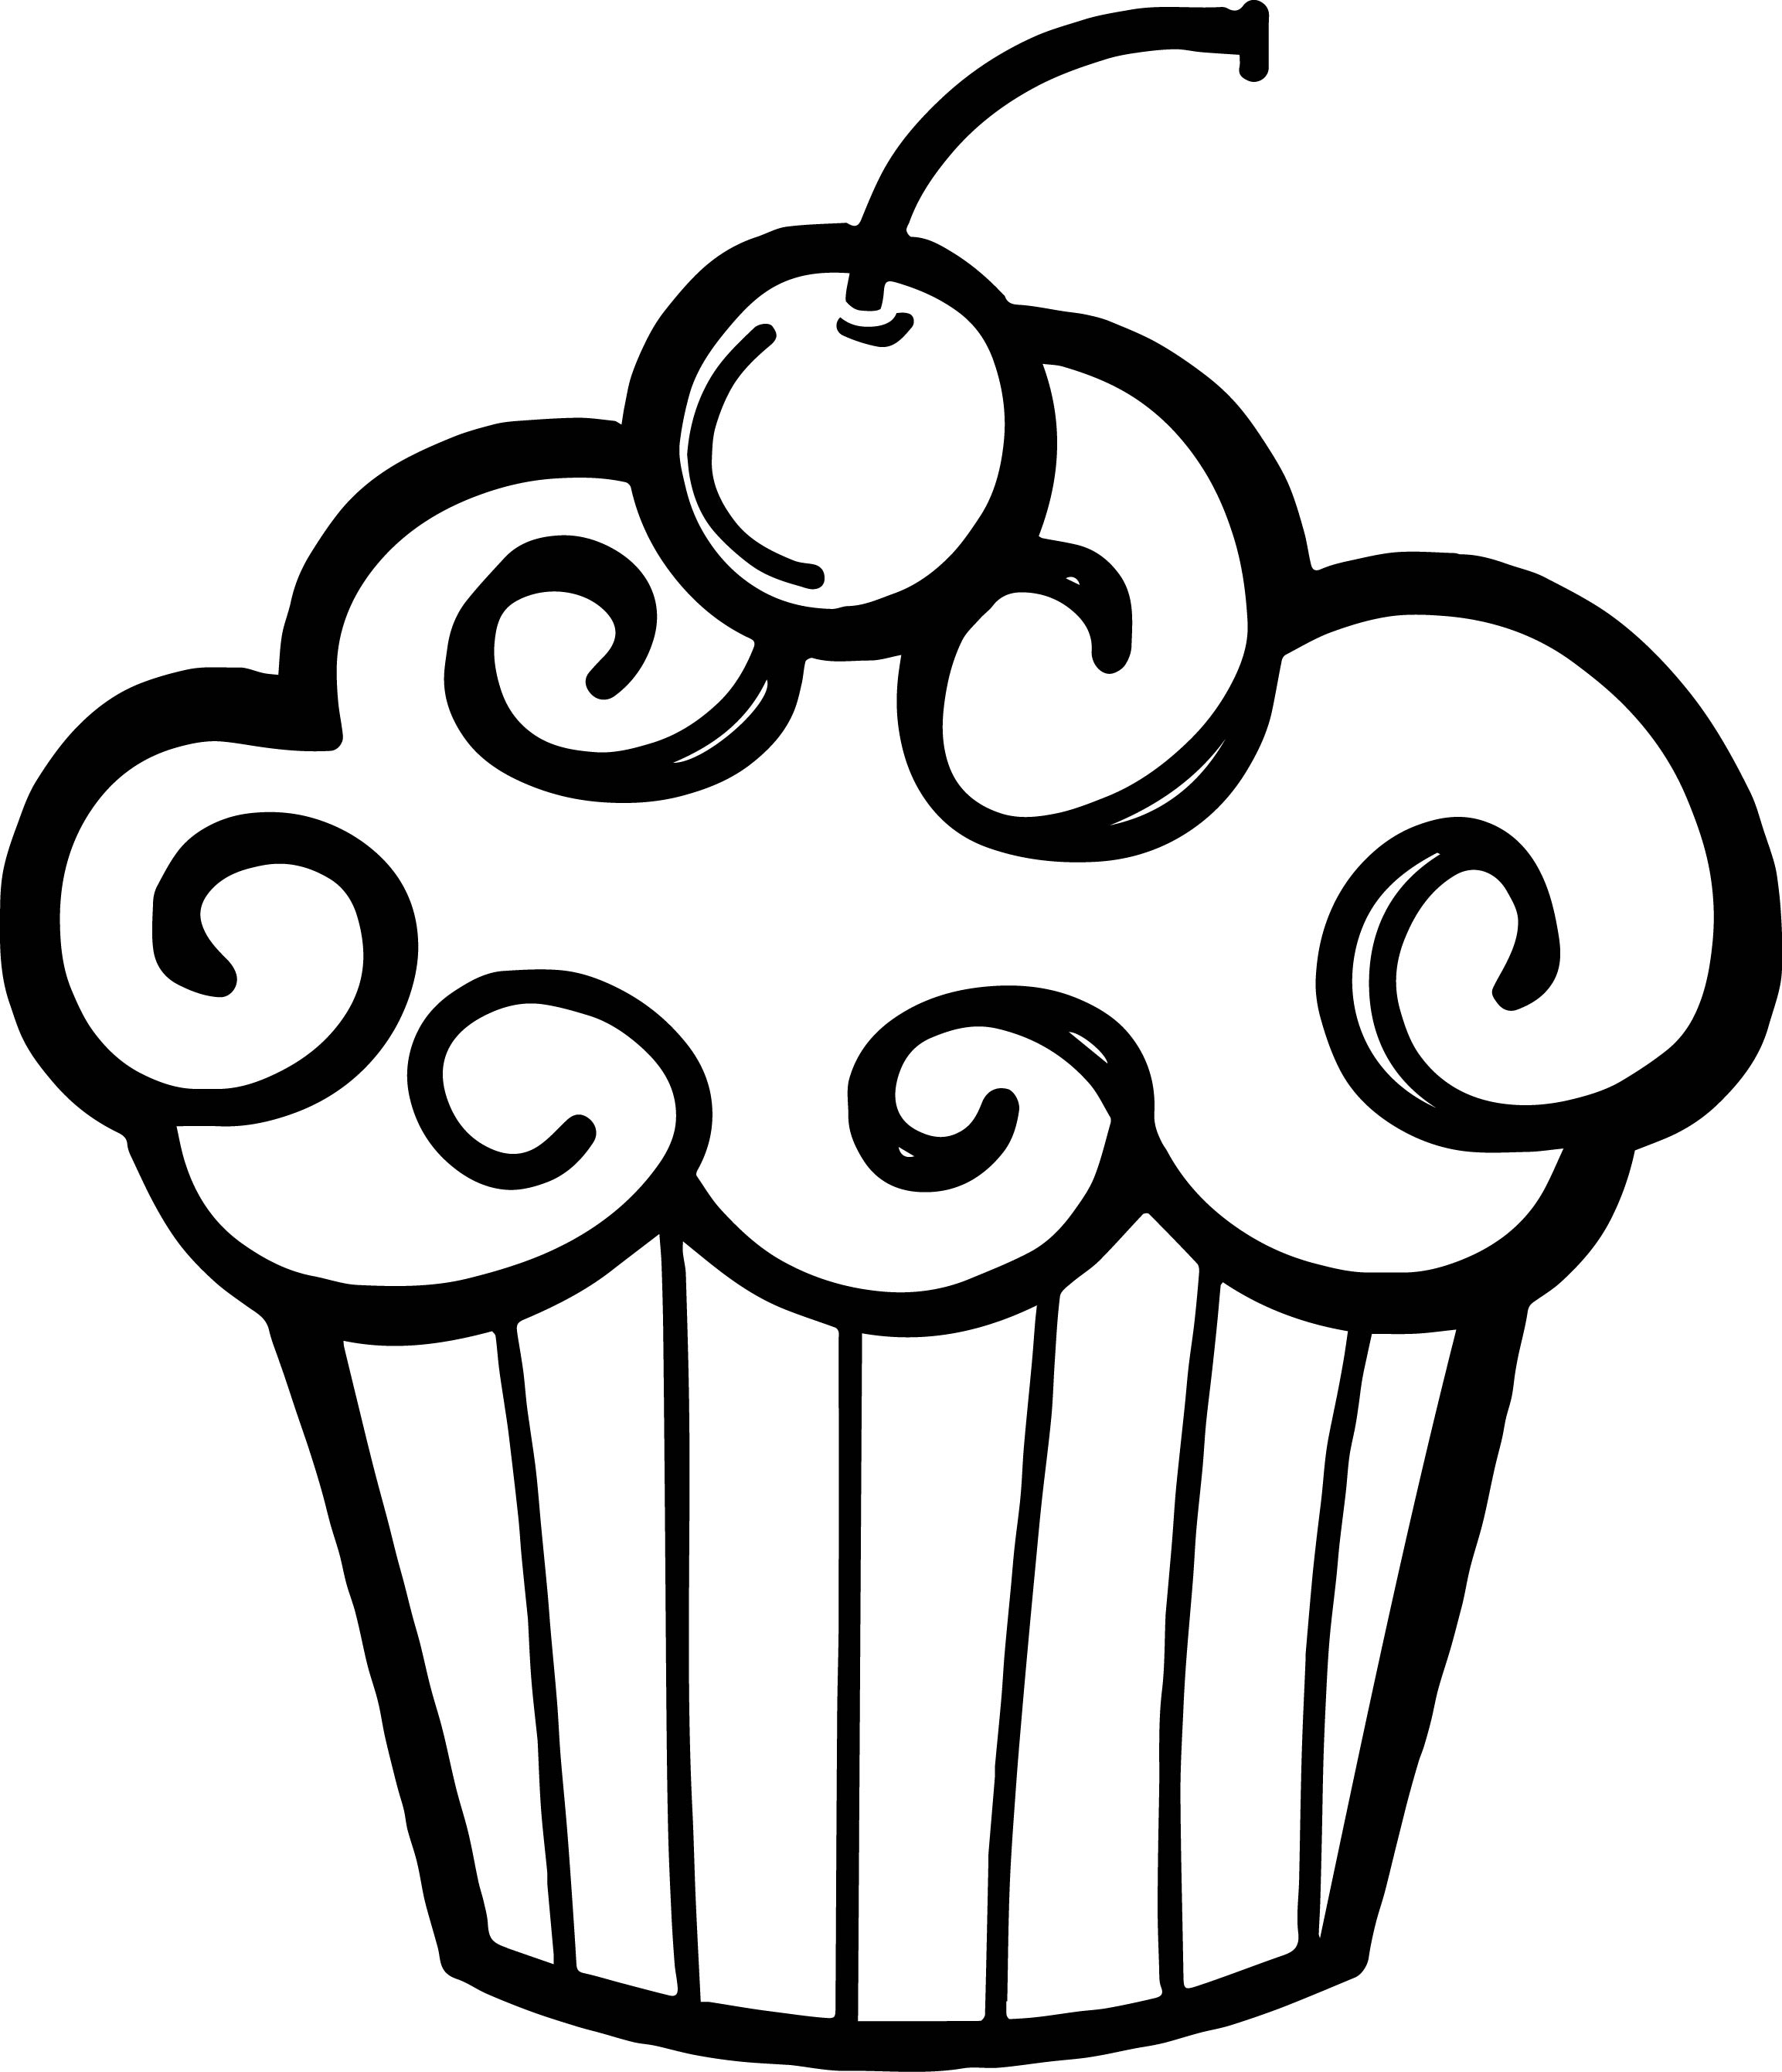 cupcake line drawing at getdrawings com free for personal use rh getdrawings com Outline Cupcake Clip Art with Sprinkles Plain Cupcake Outline